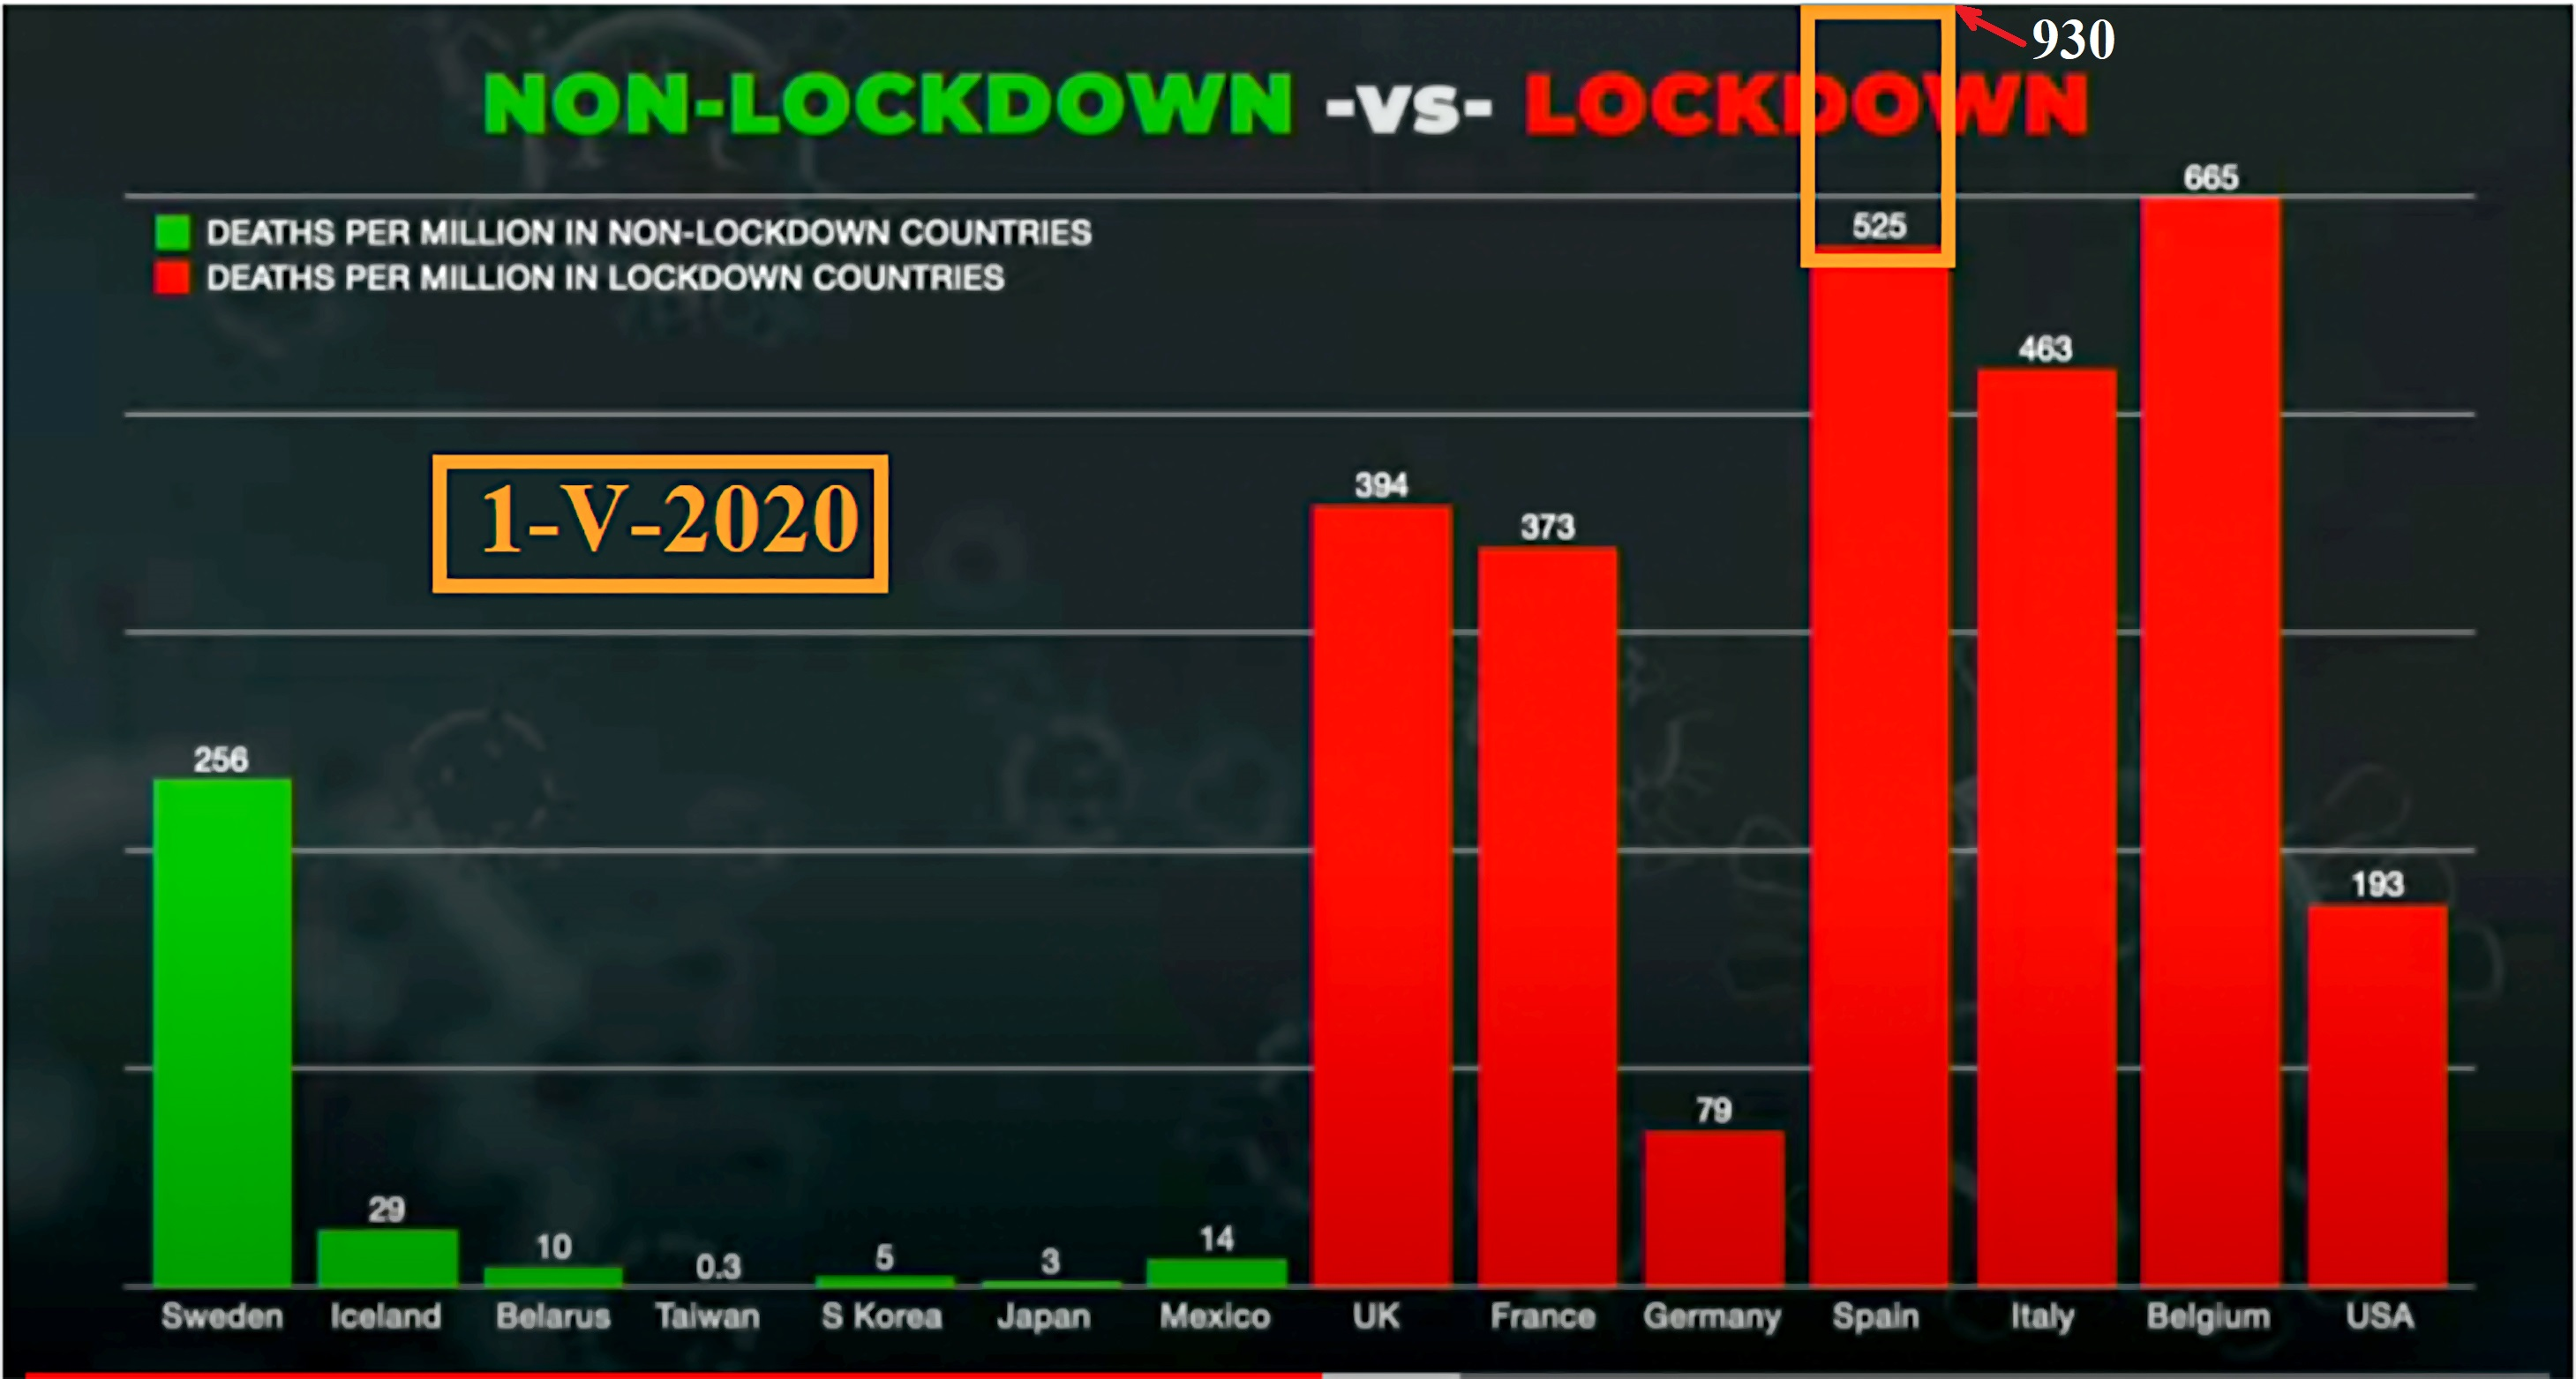 04_Non_Lockdown_vs_lockdow_coronavirus_1